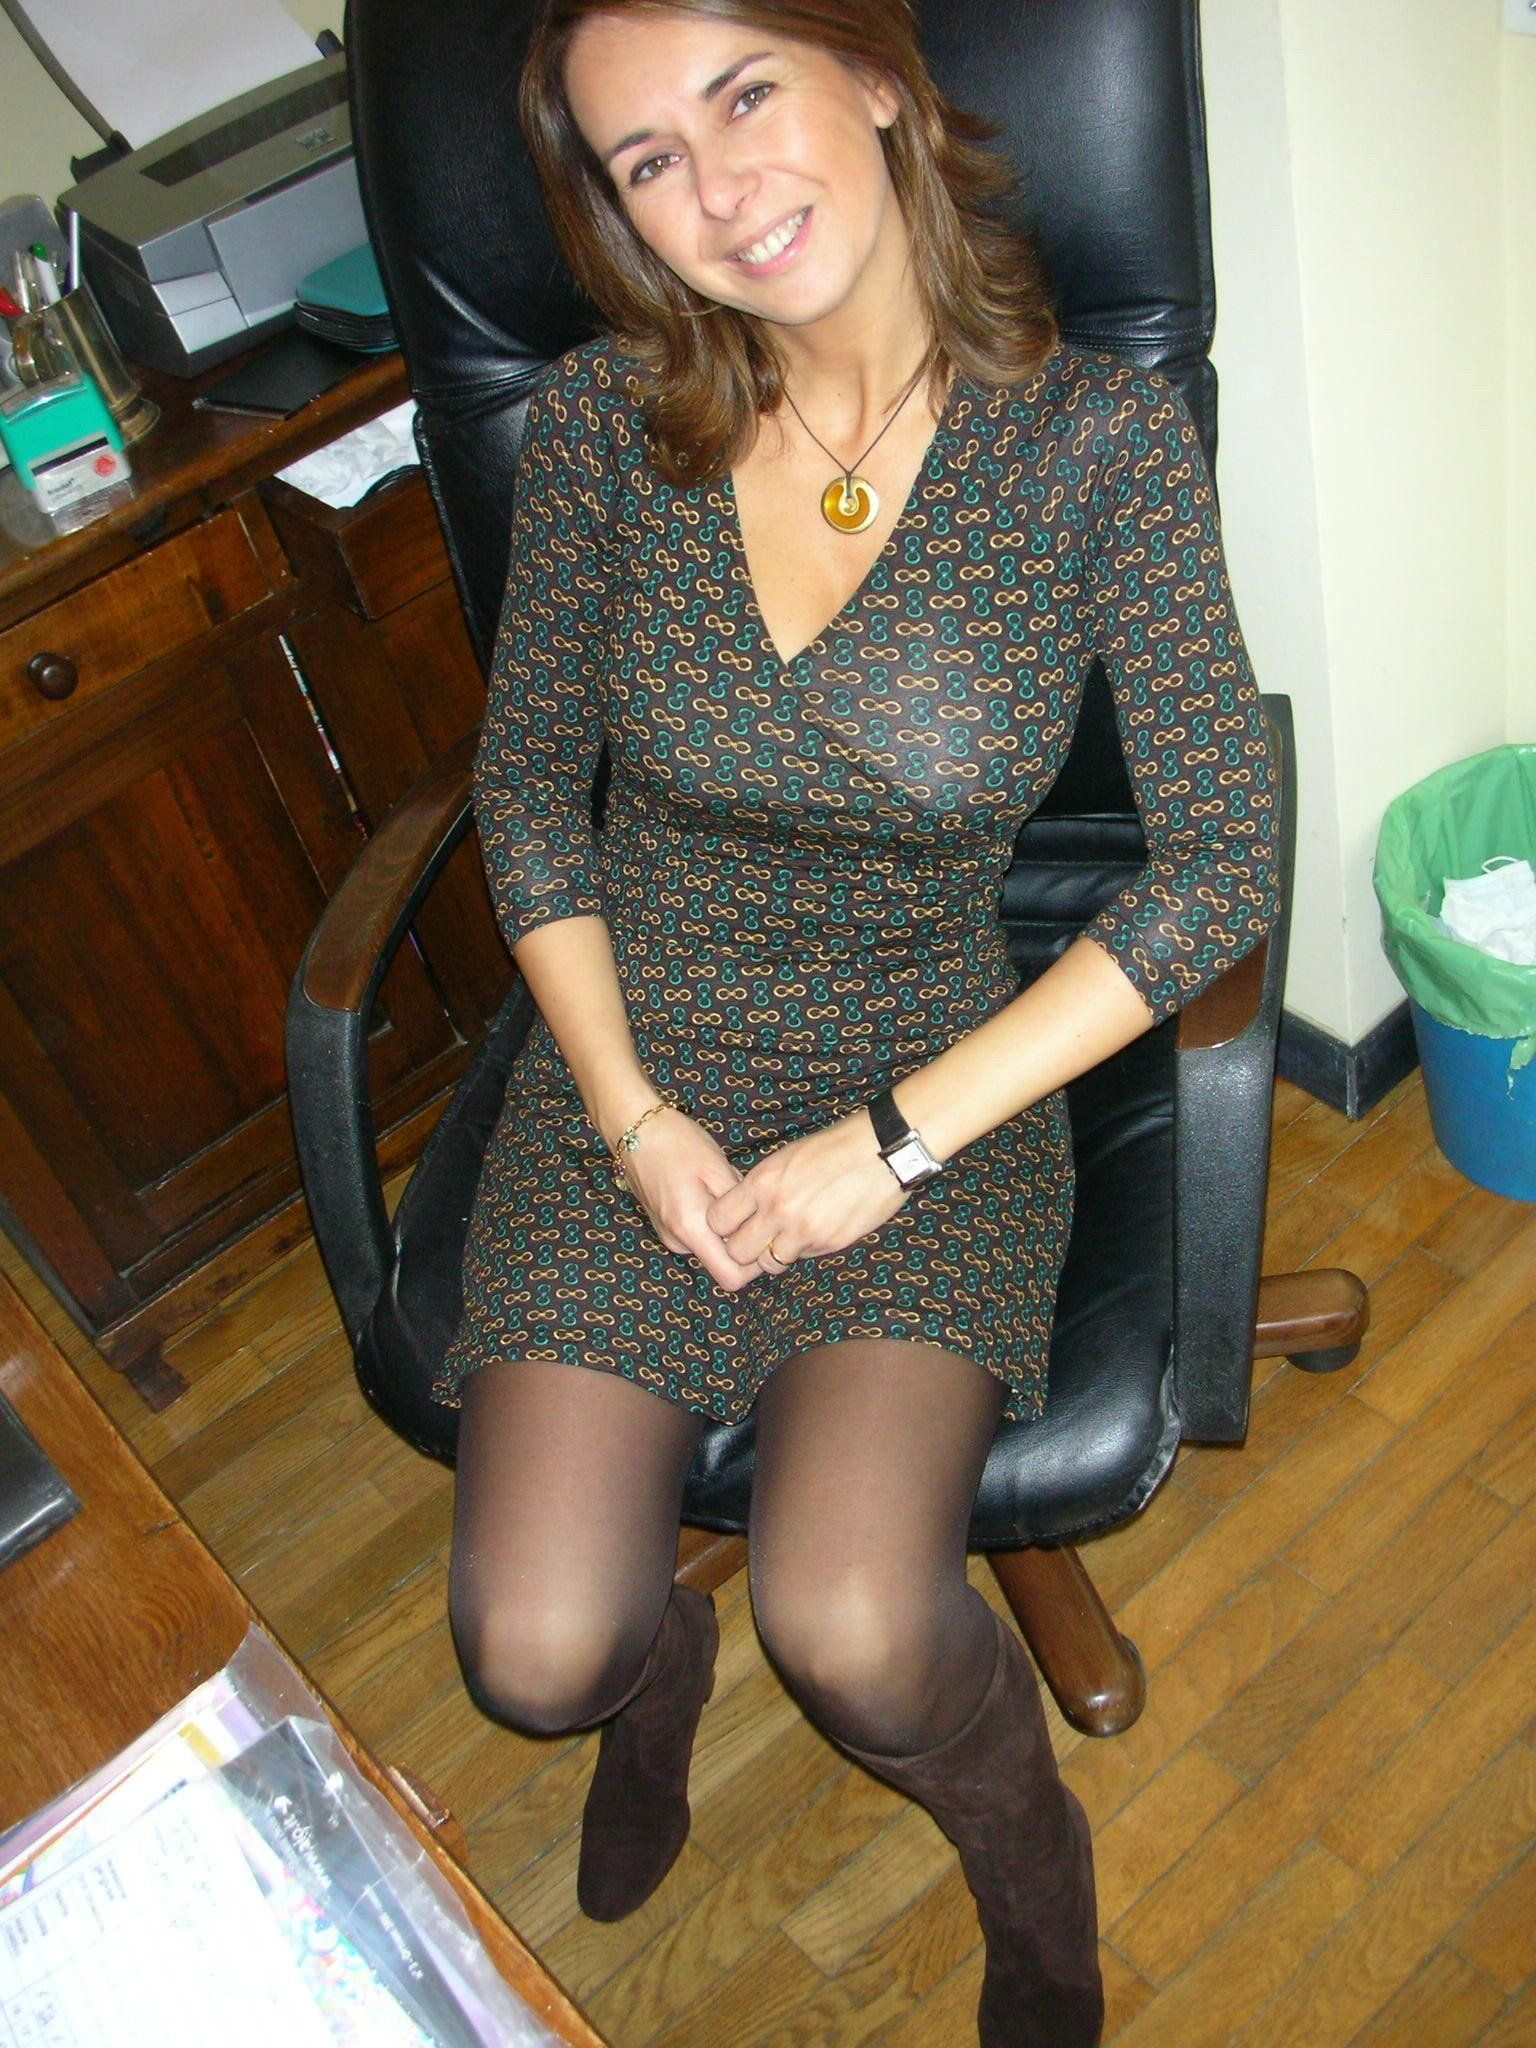 Office Amateur Porn real office fuck amateur top adult free gallery.